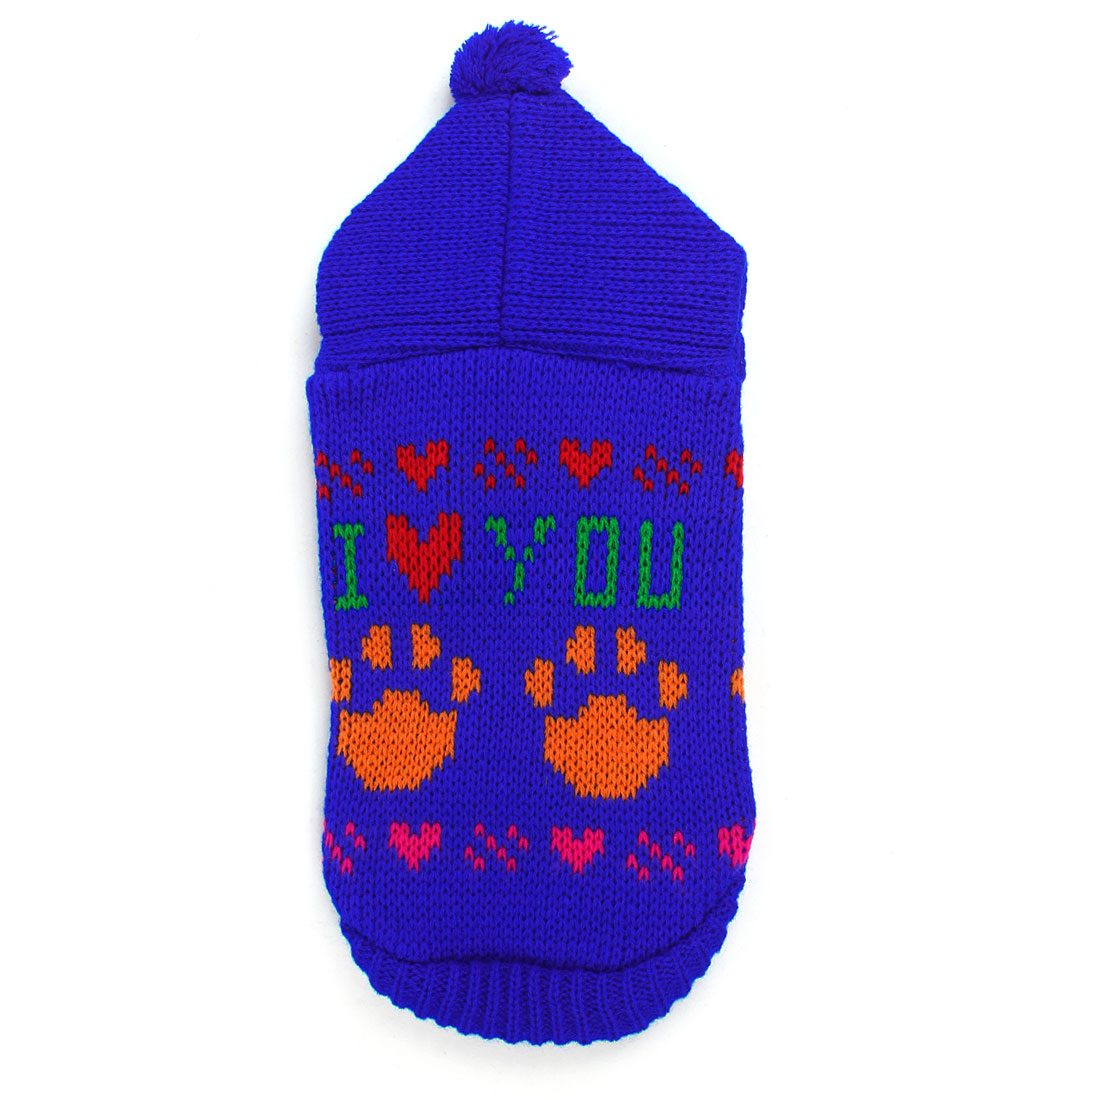 Blue Knitted Paw Letter Printed Hoodie Pet Doggy Yorkie Apparel Sweater XS